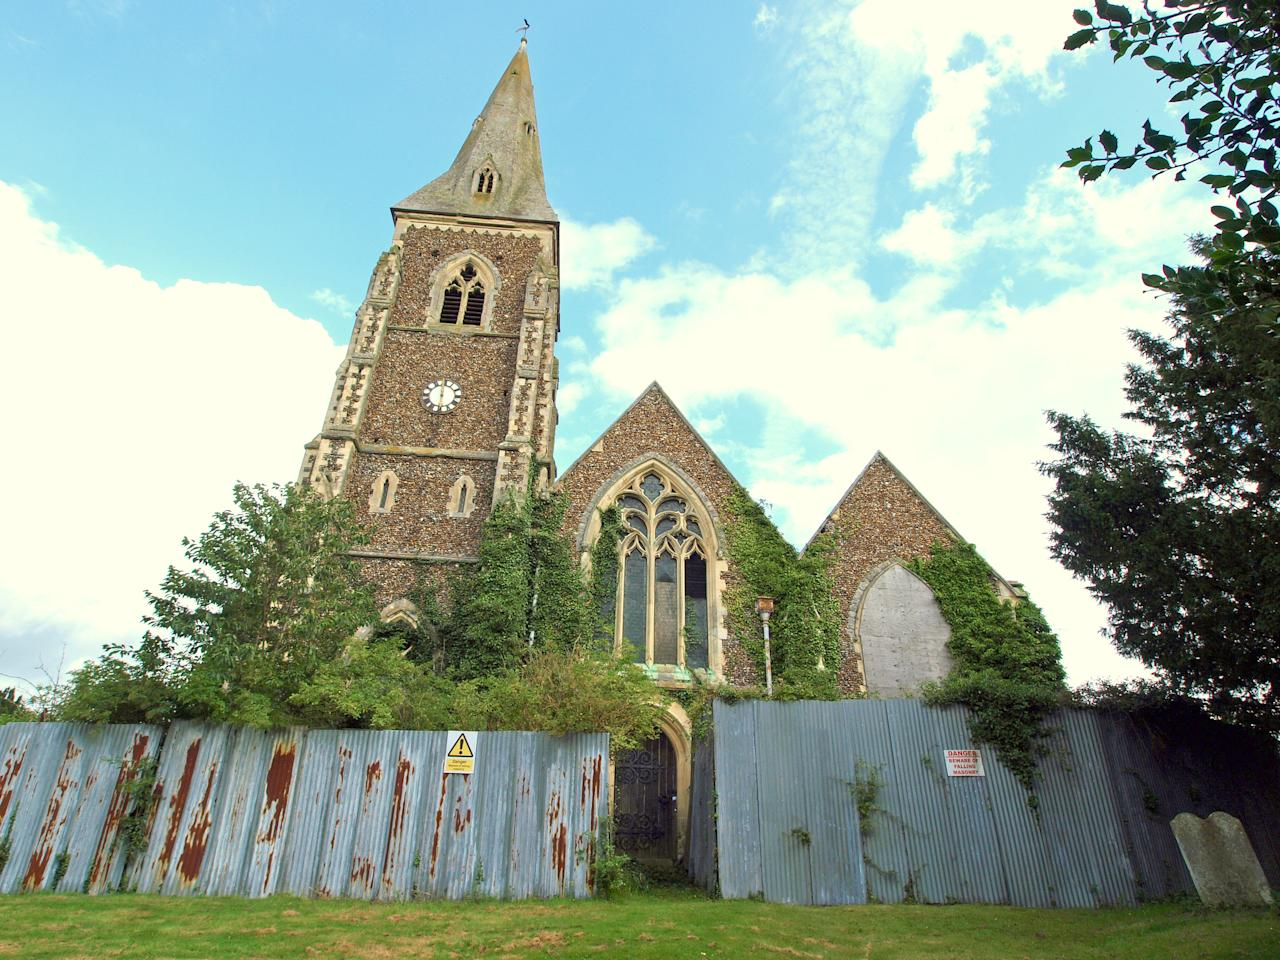 The listed church building, which was abandoned 20 years ago, now has rotting wooden floors, a crumbling exterior, and a weathercock which was damaged by a low-flying Chinook from a nearby base. (David Robarts/The Victorian Society)